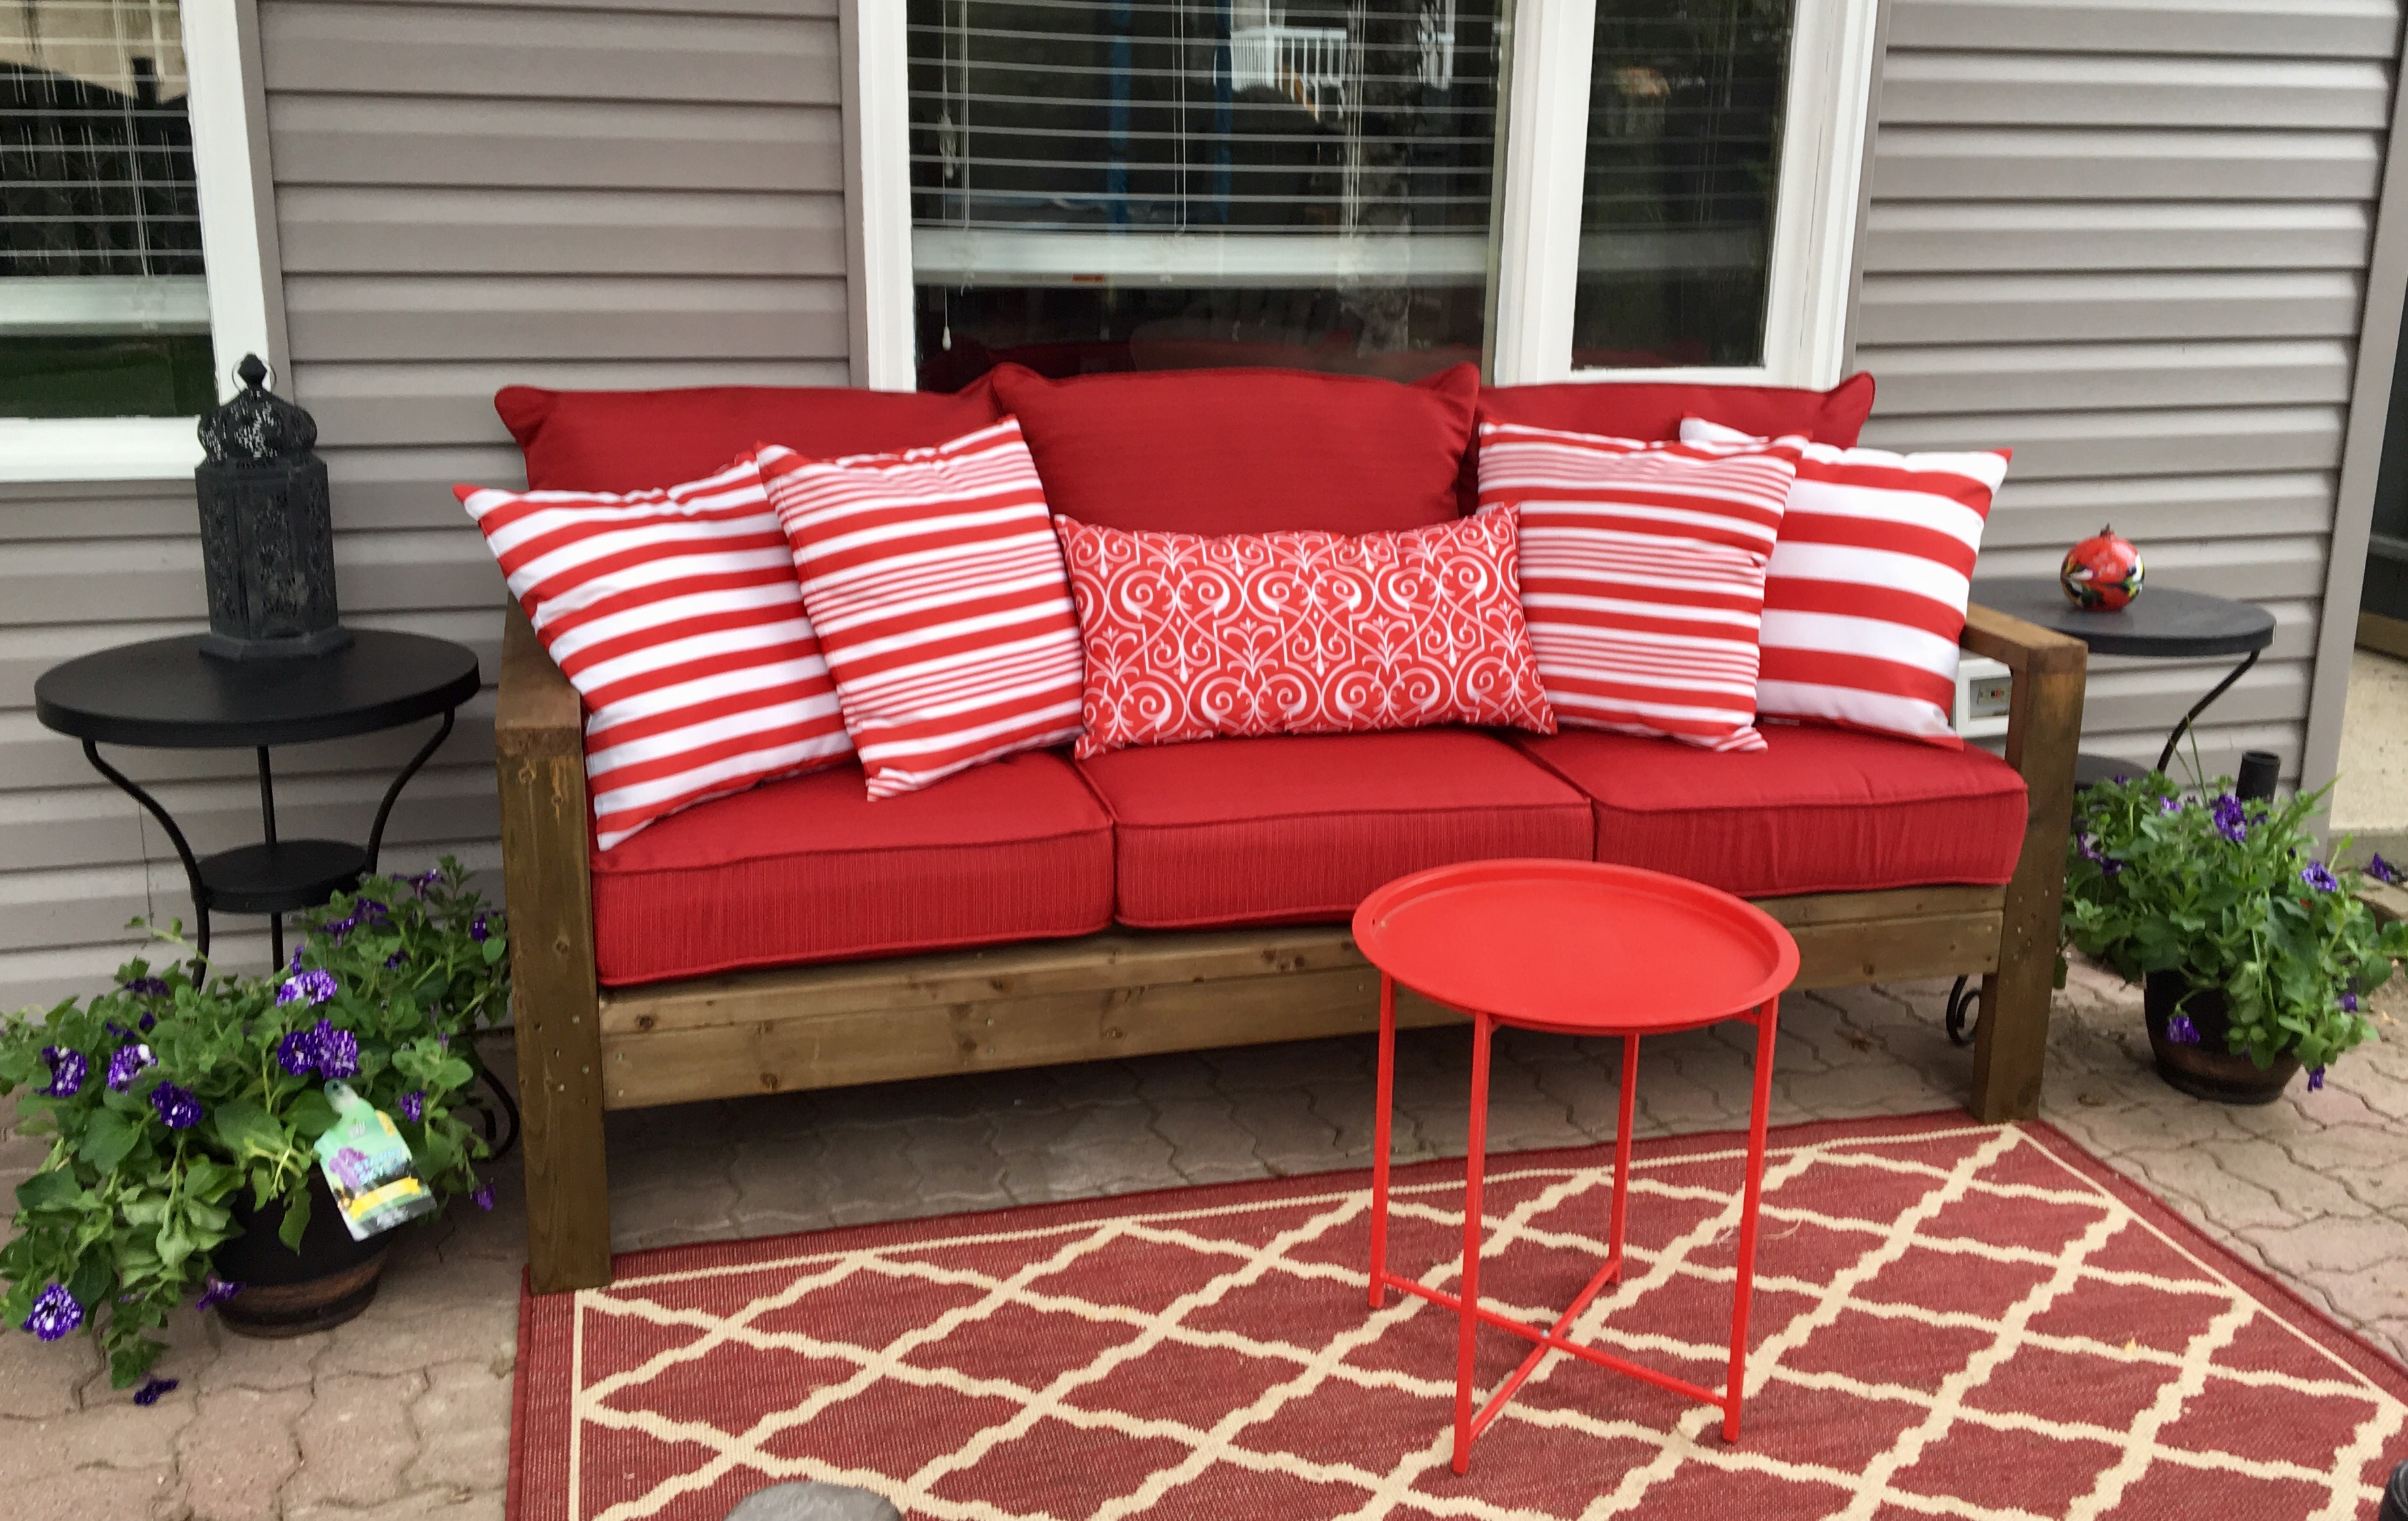 Anna's Outdoor Sofa - DIY Projects